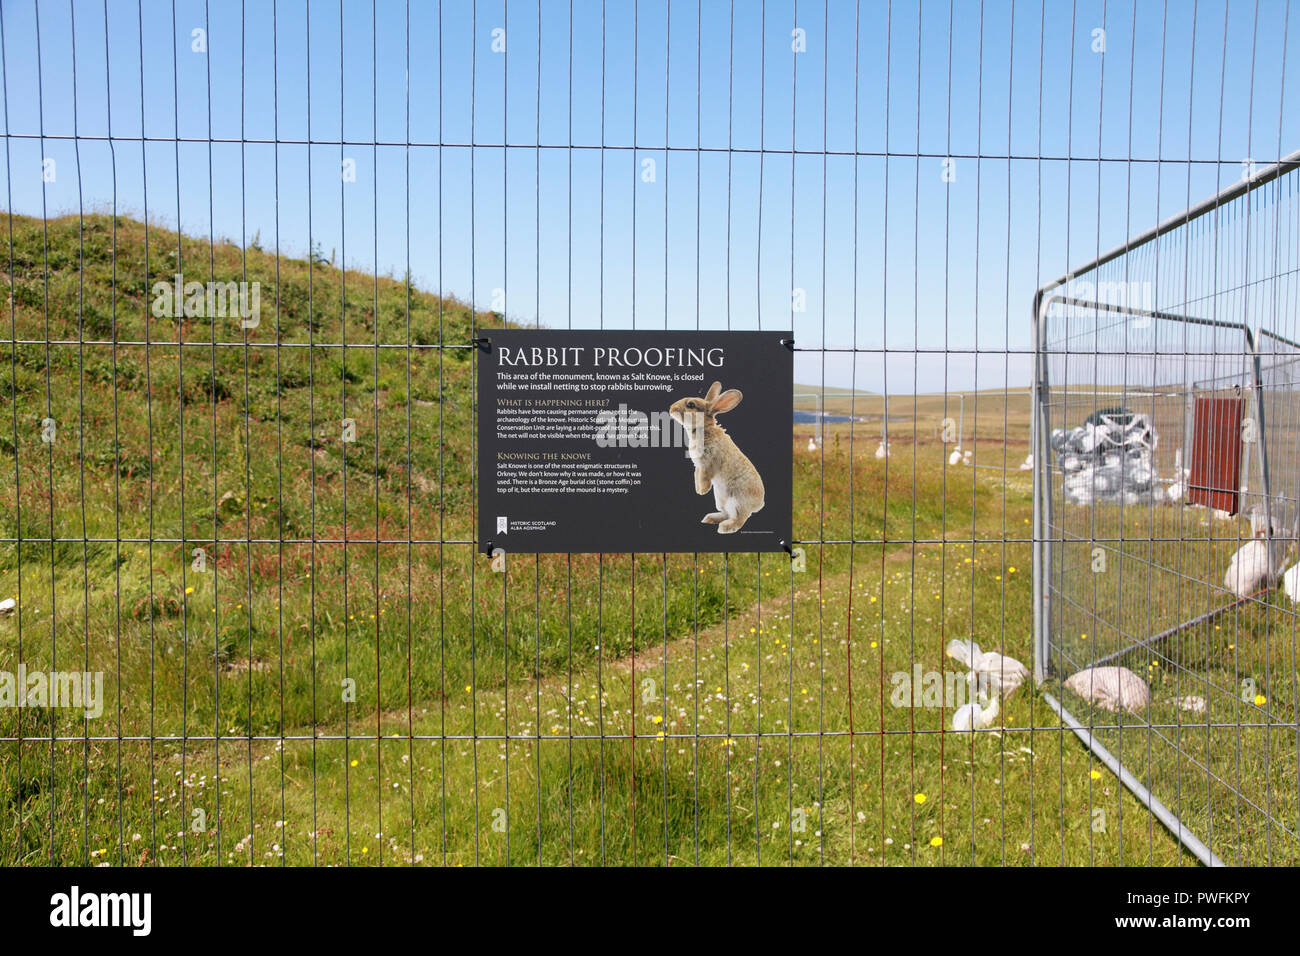 Part of the Ring of Brodgar site, Orkney closed to install rabbit proof netting as rabbits are damaging Salt Knowe - Stock Image